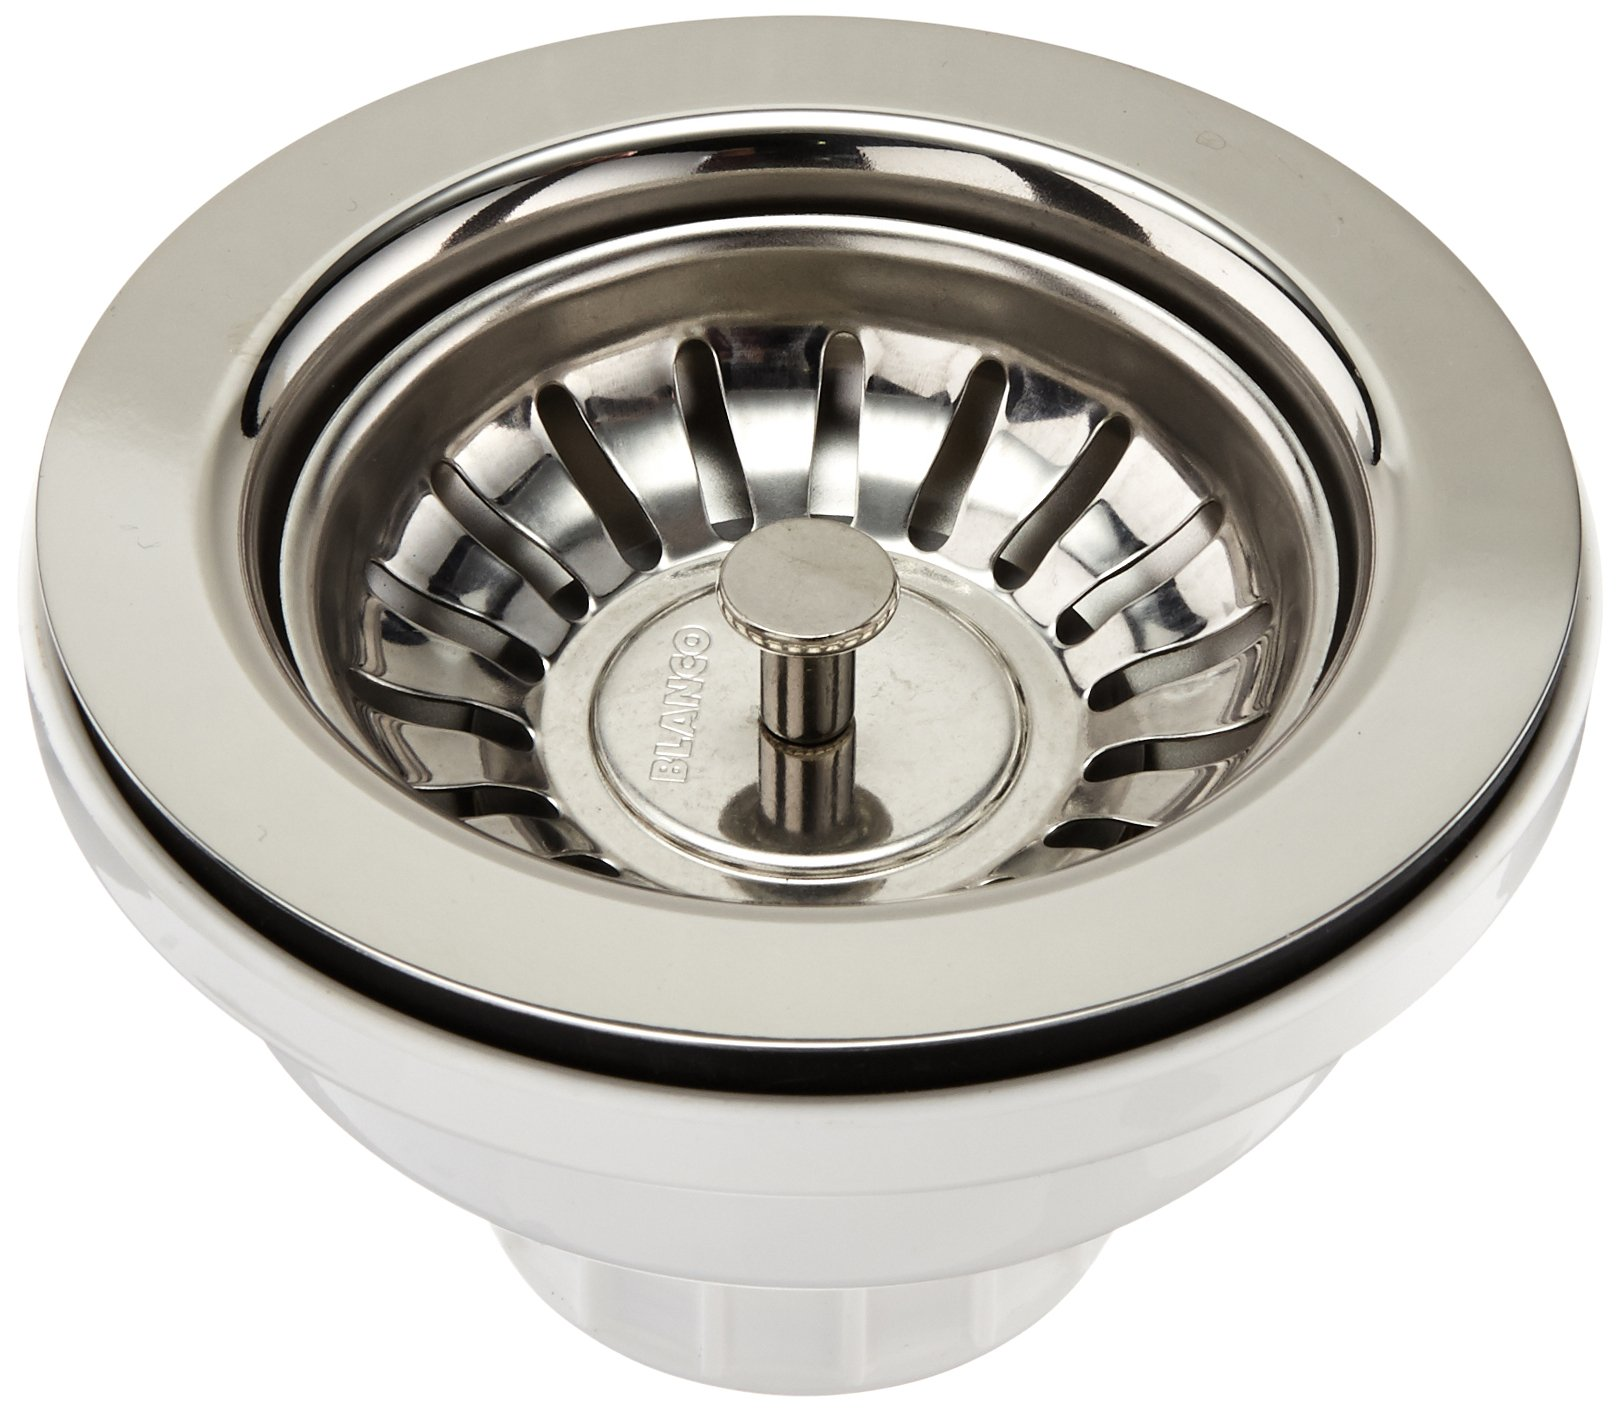 Blanco BBS-SS-B 3-1/2-Inch Basket Strainer, Stainless Steel Finish